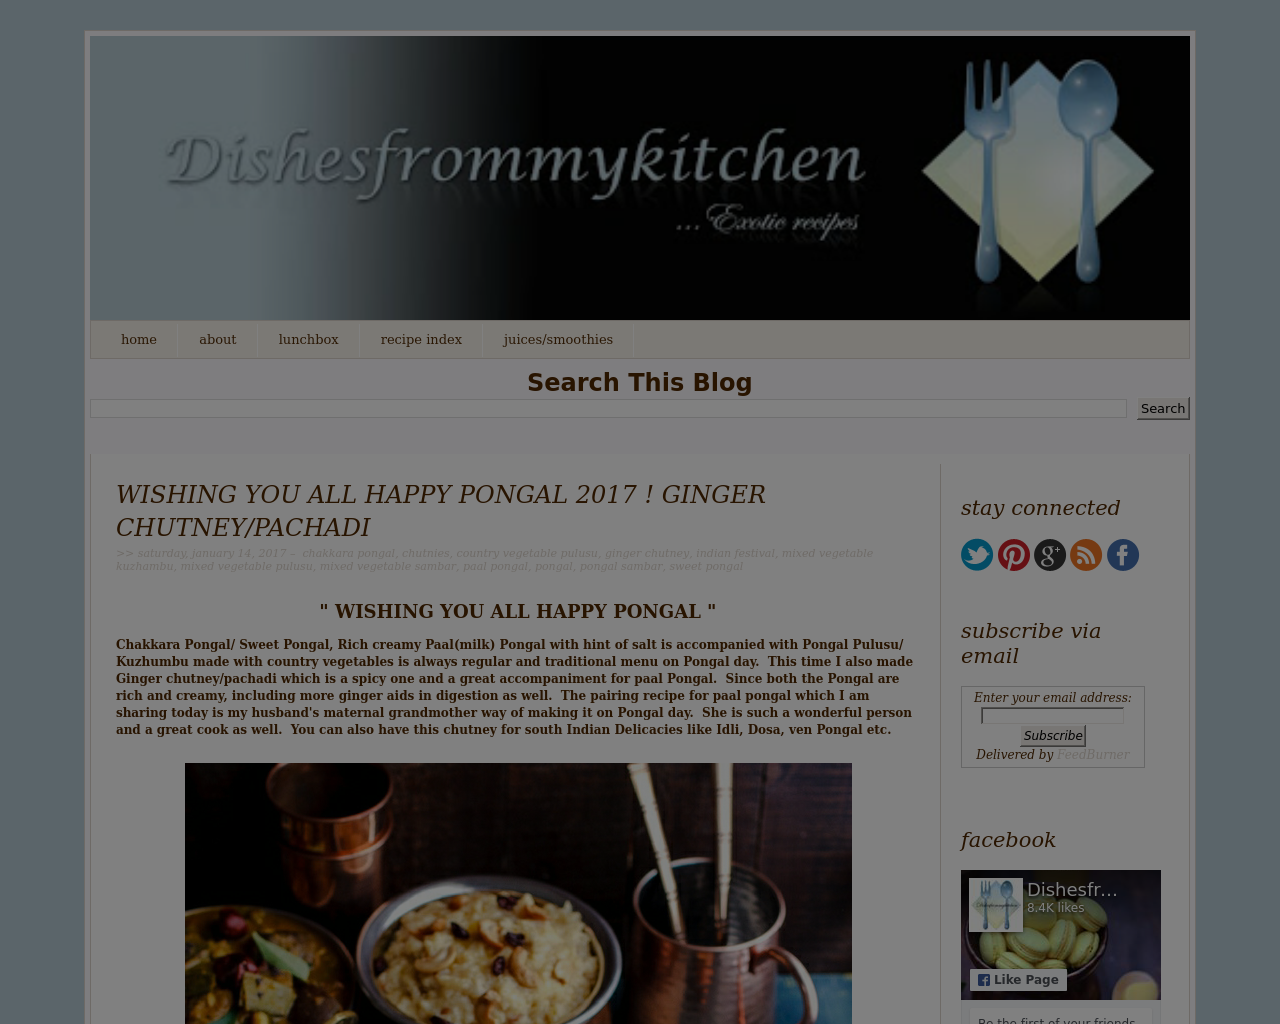 Dishes-from-my-kitchen-Advertising-Reviews-Pricing